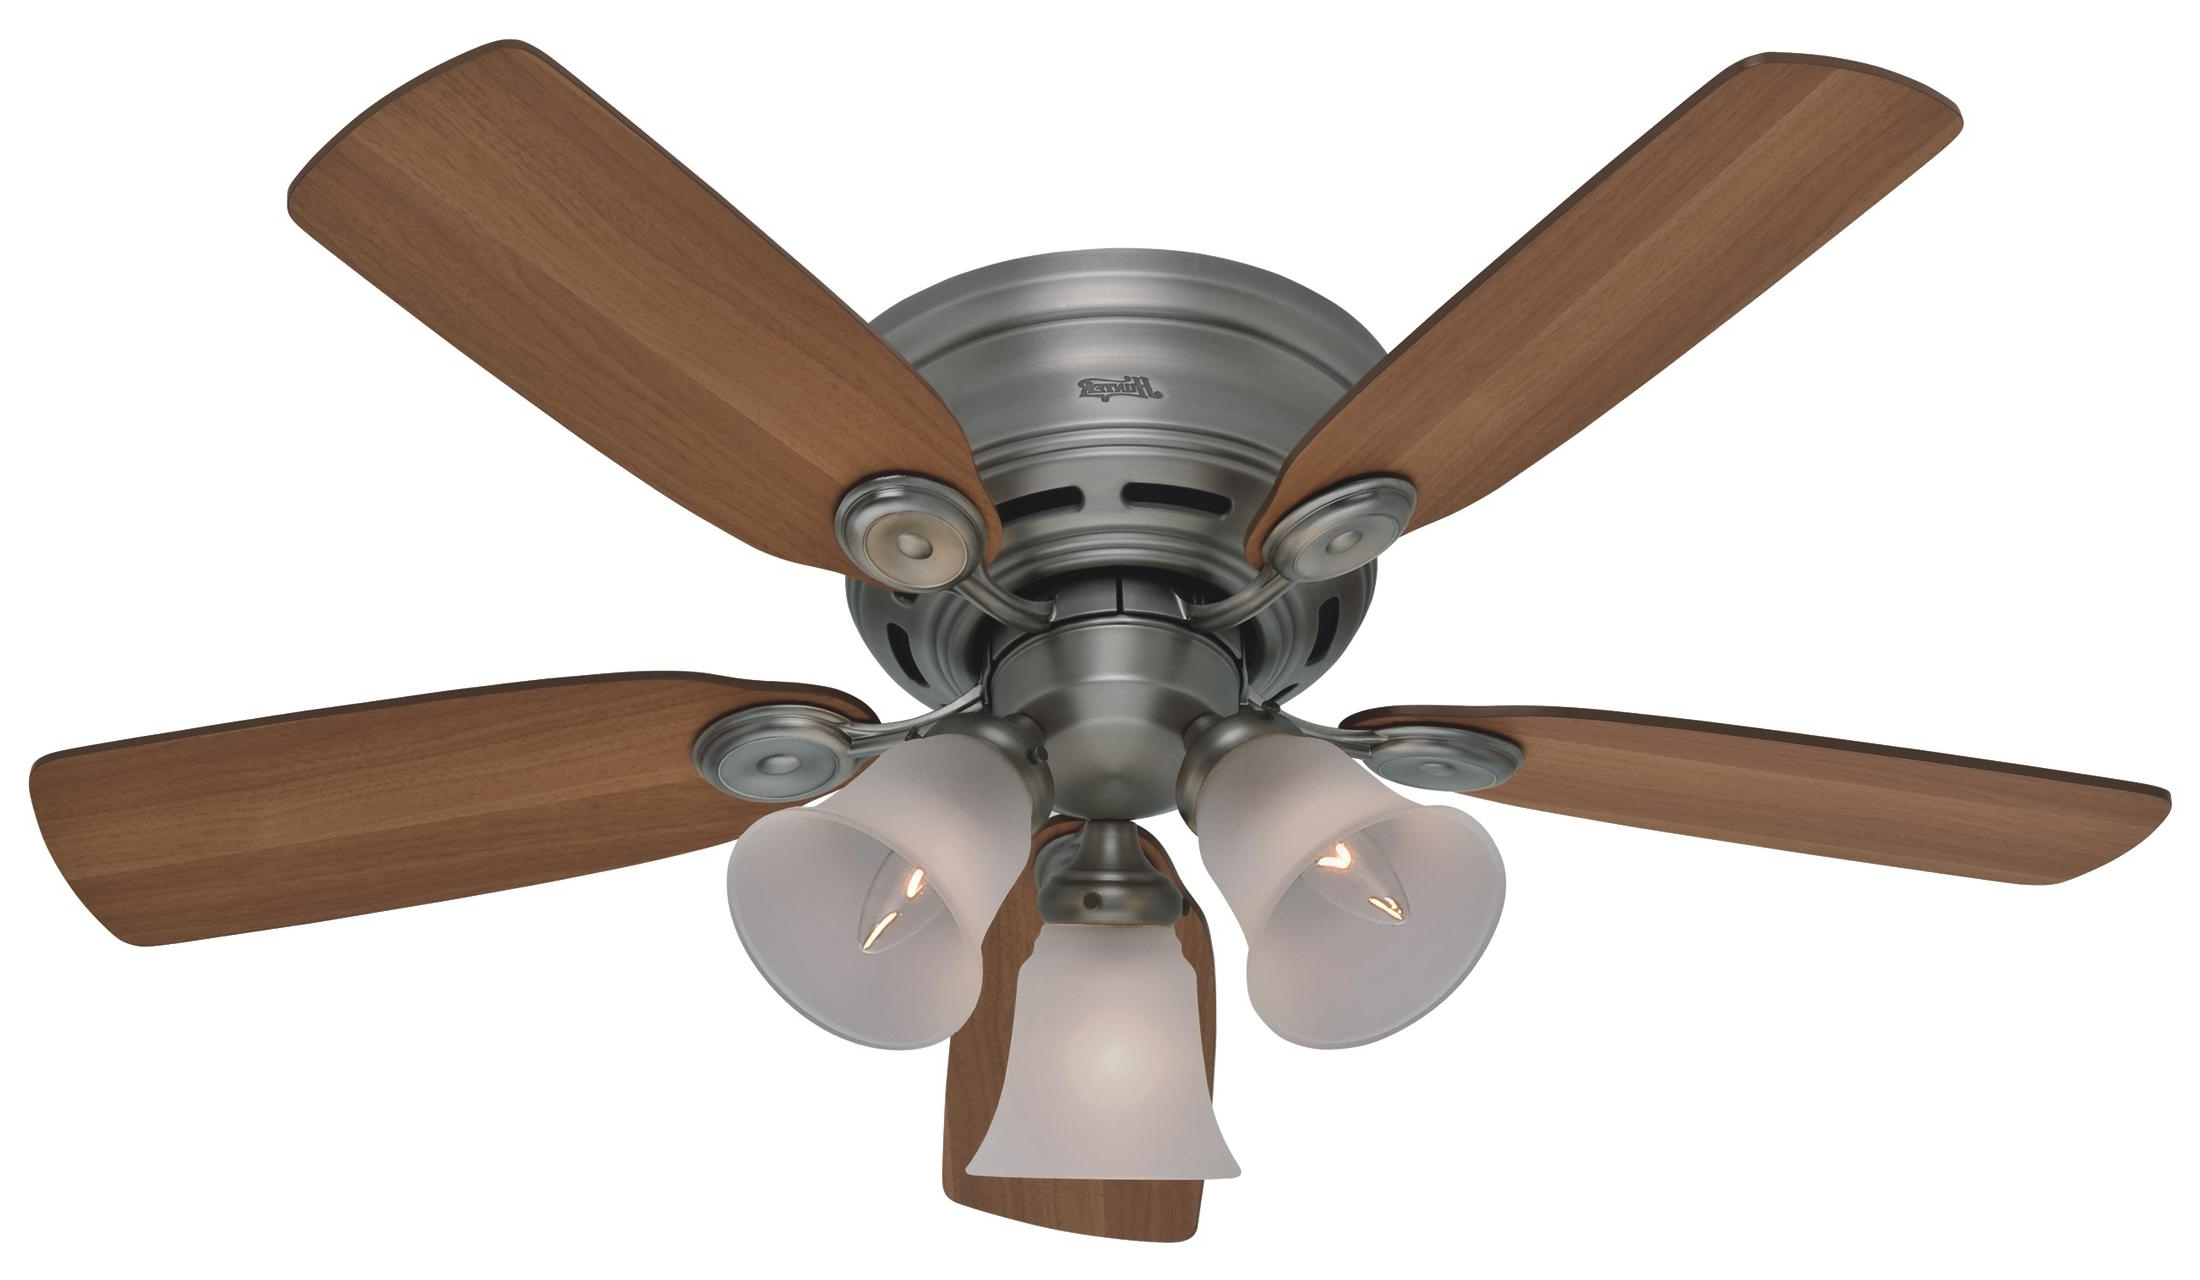 2018 Ideas: Ceiling Fans With Lights Walmart (View 13 of 20)